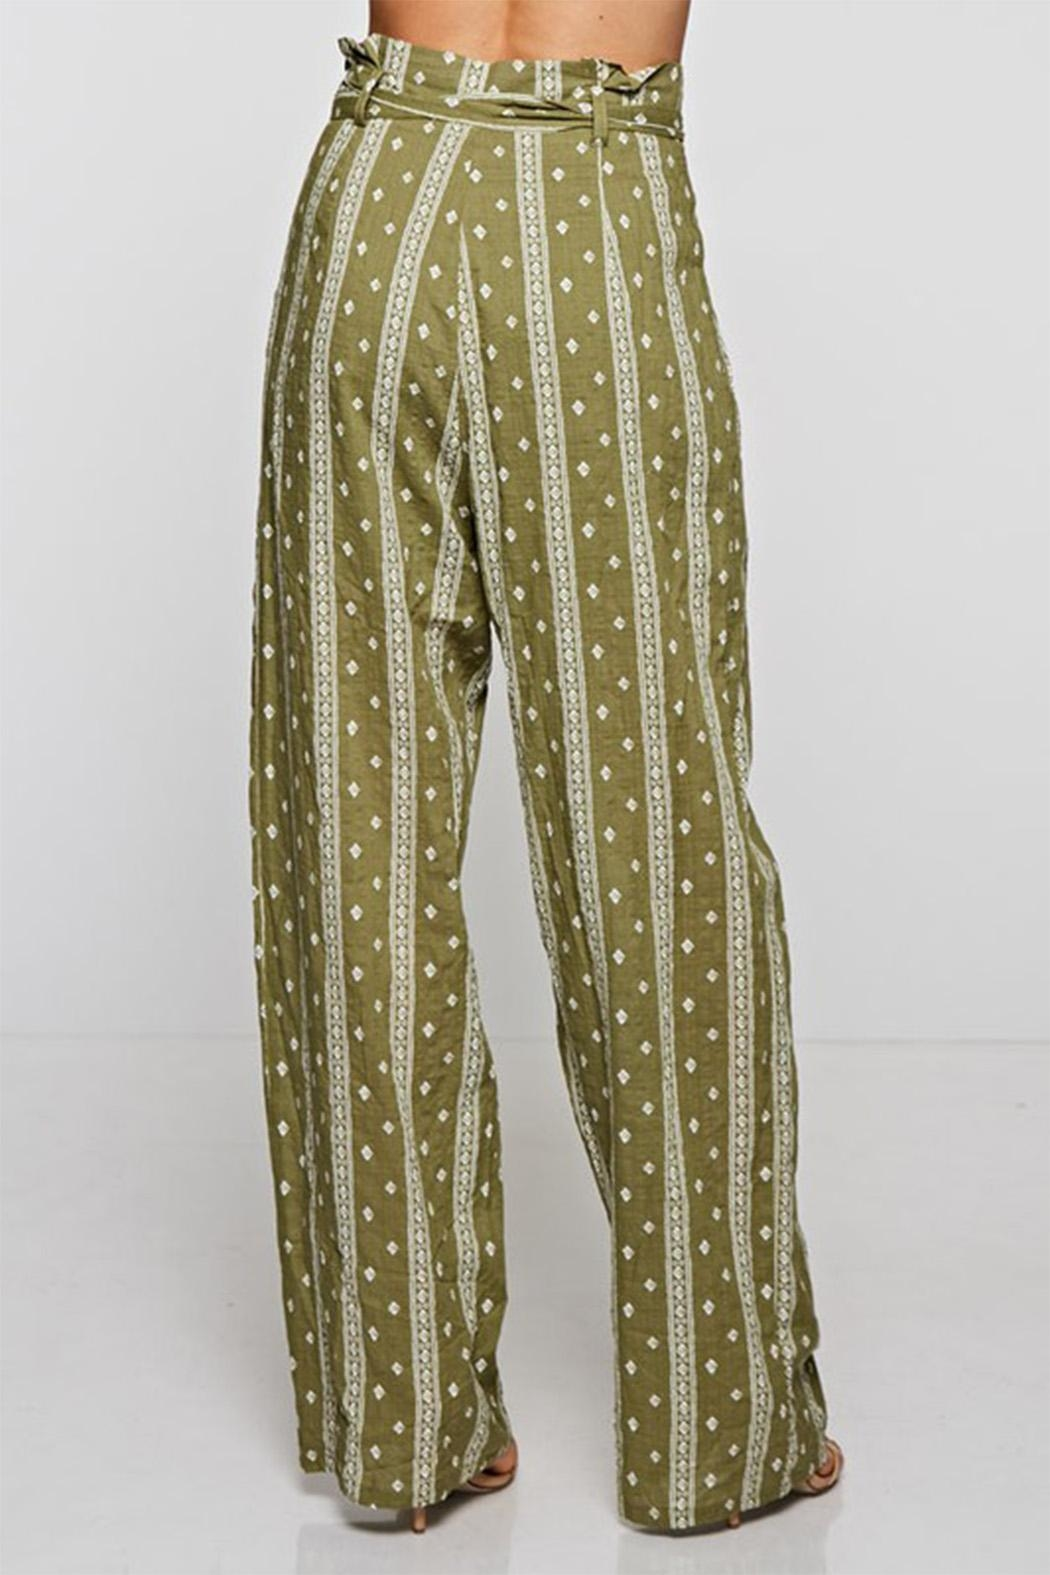 The Clothing Co Olive Print Pants - Side Cropped Image